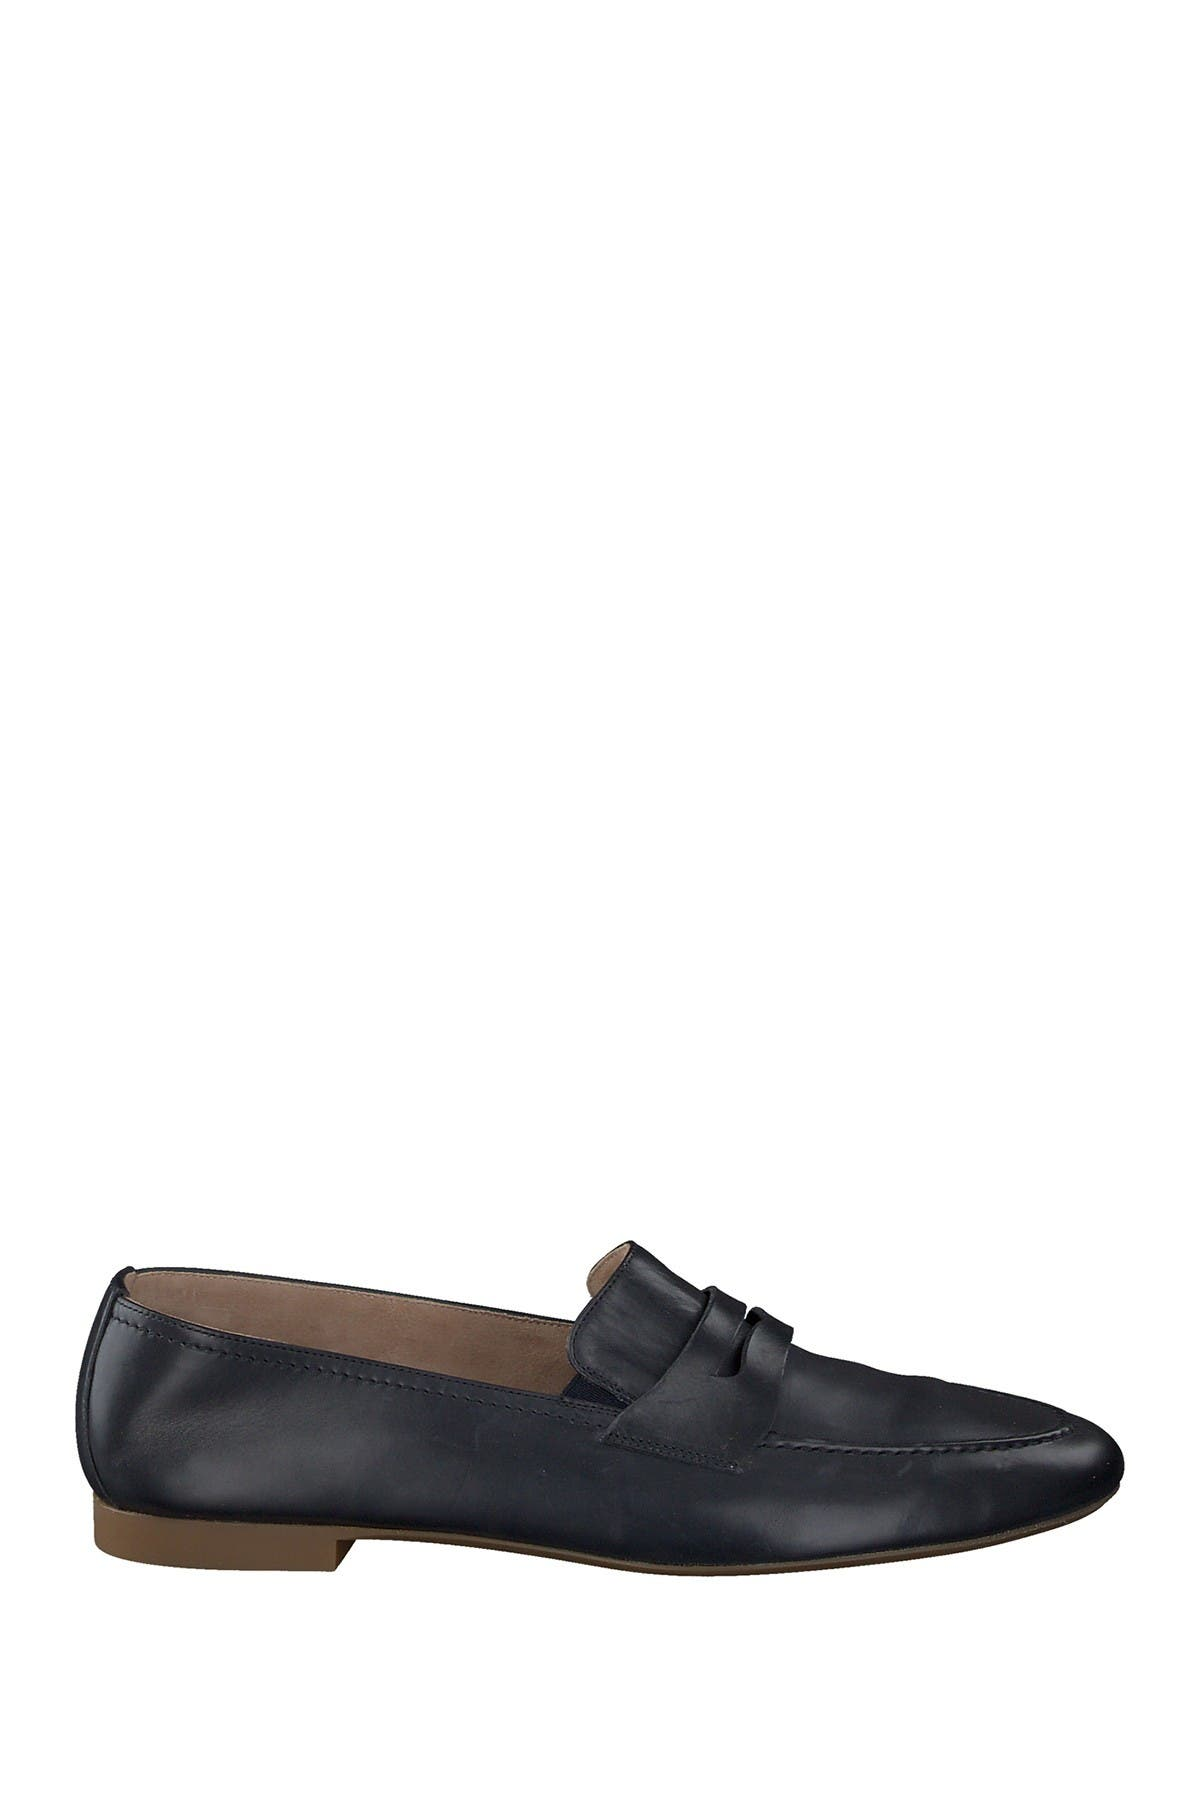 Image of Paul Green R2593 Penny Slot Loafer